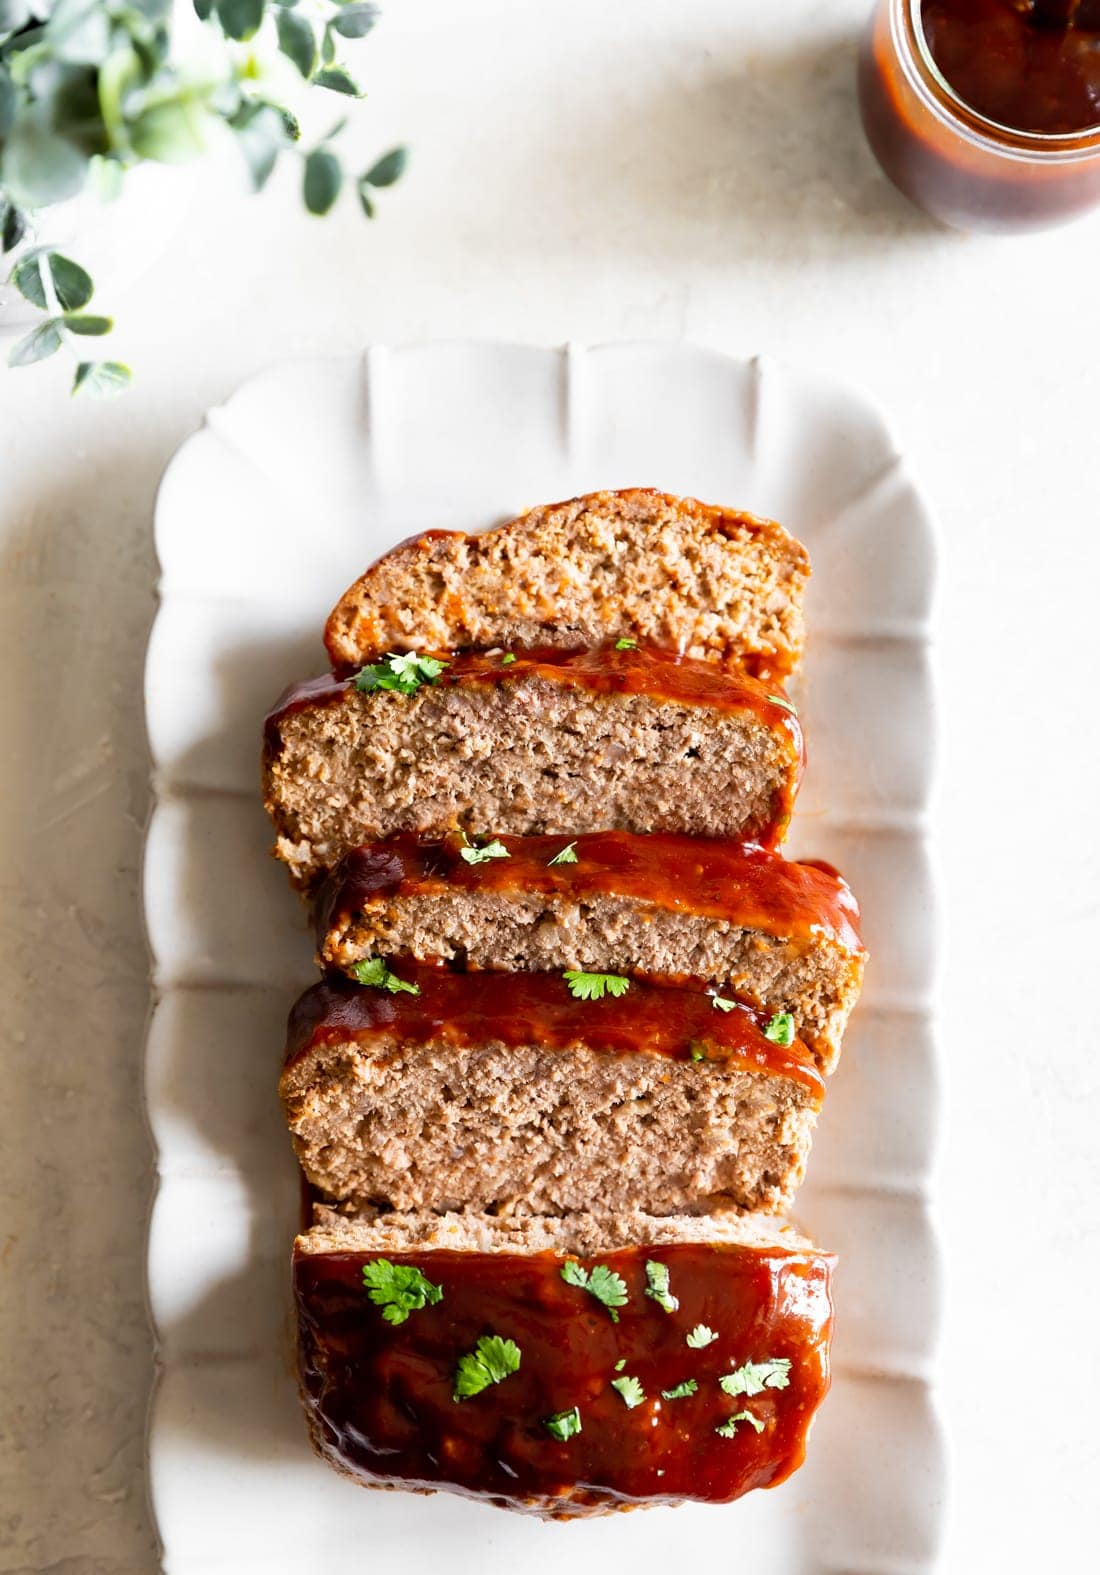 guava bbq sauce on meatloaf recipe sliced on a rectangular plate